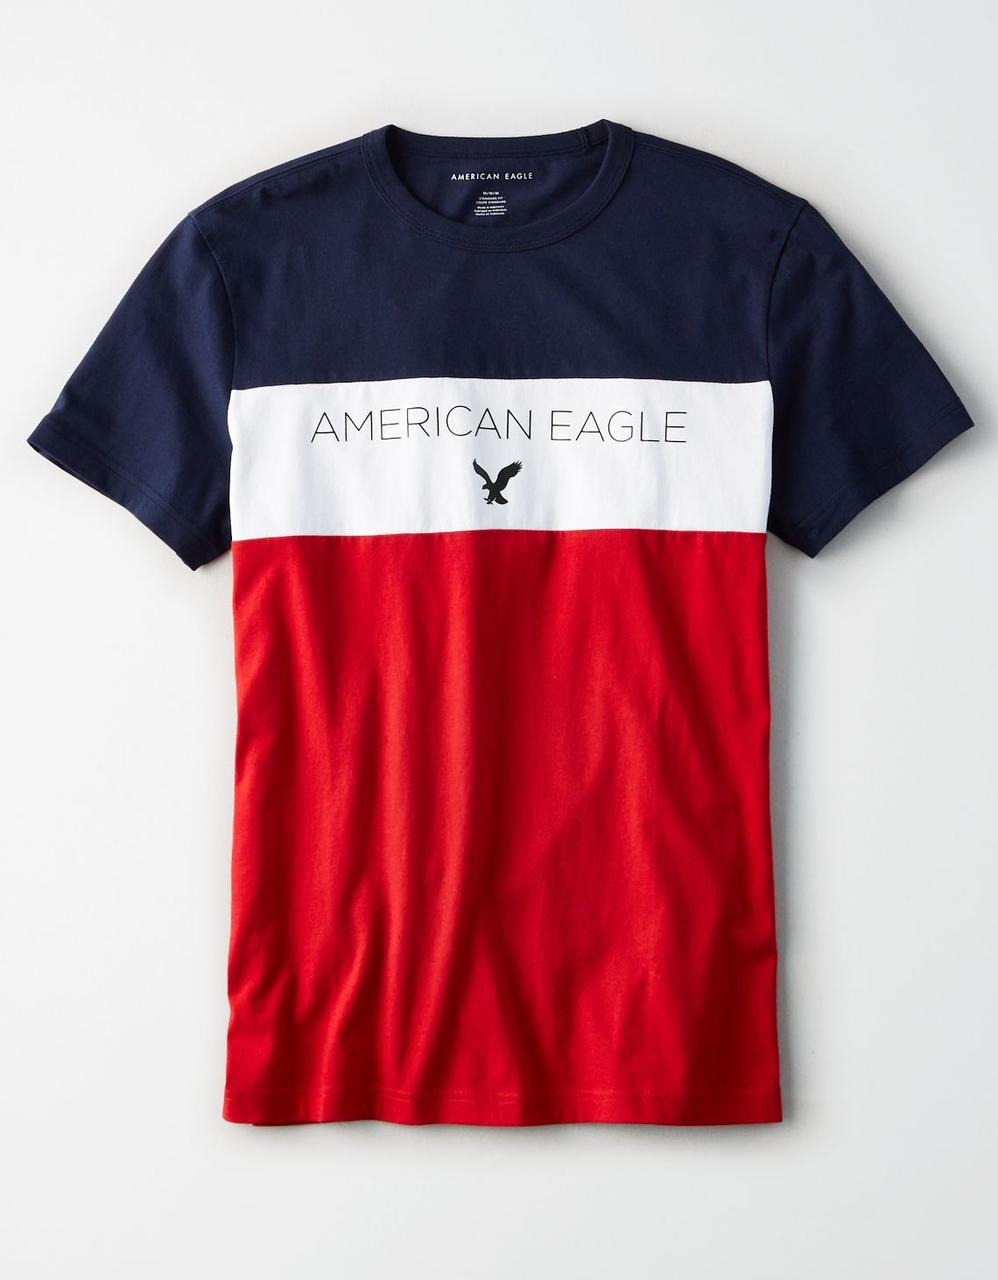 e0b22df8c6 American Eagle T-Shirts, AE COLORBLOCK GRAPHIC TEE for Men at Aeo.in